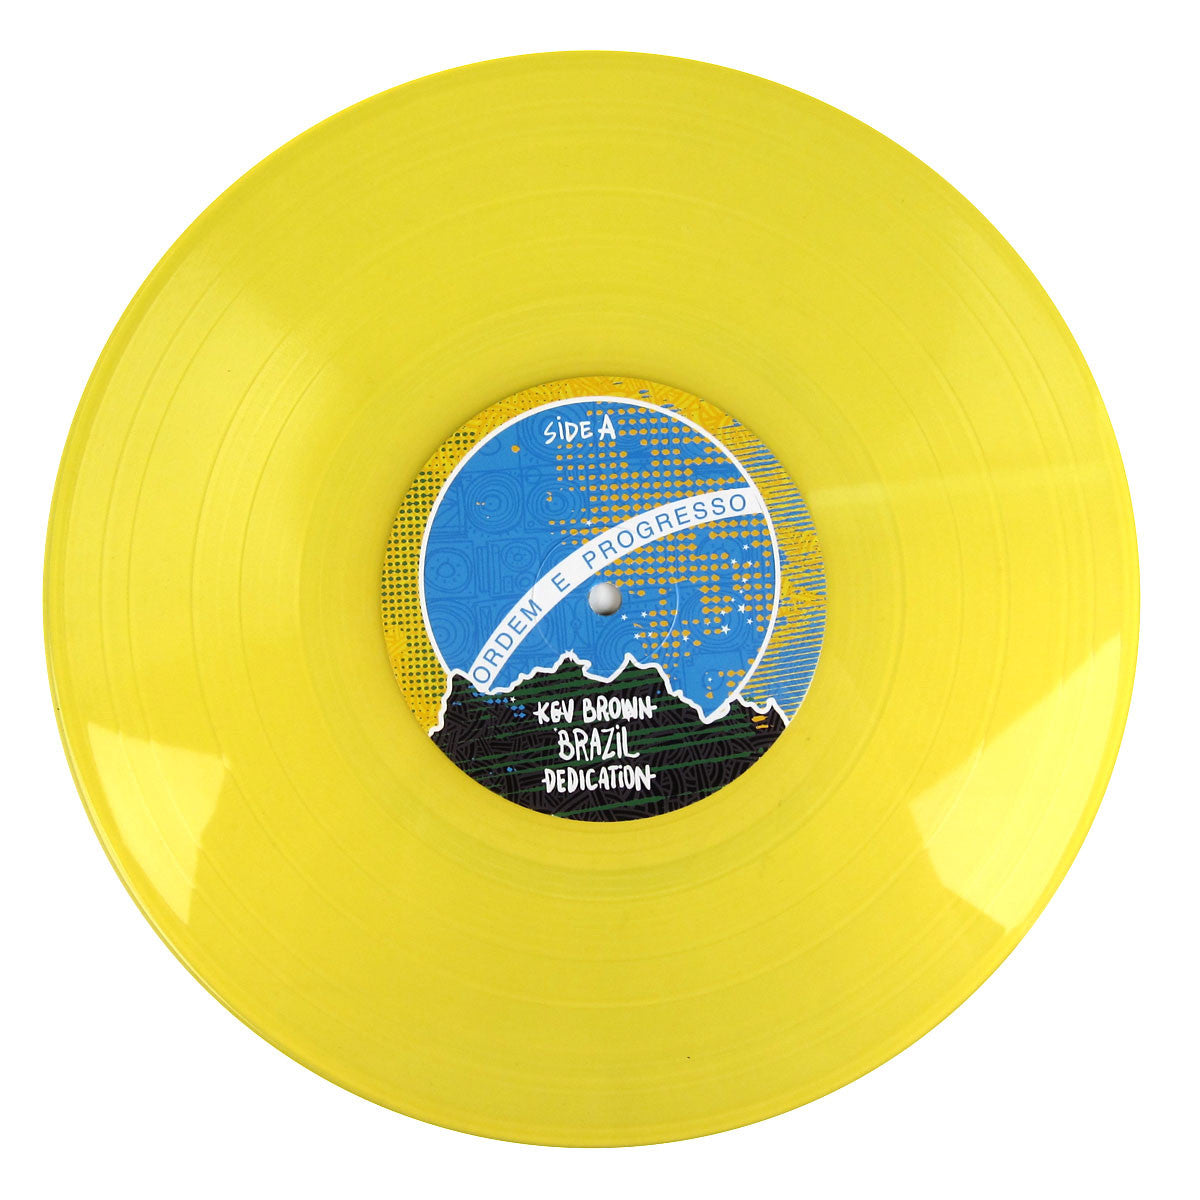 Kev Brown: Brazil Dedication (Colored Vinyl) 10""